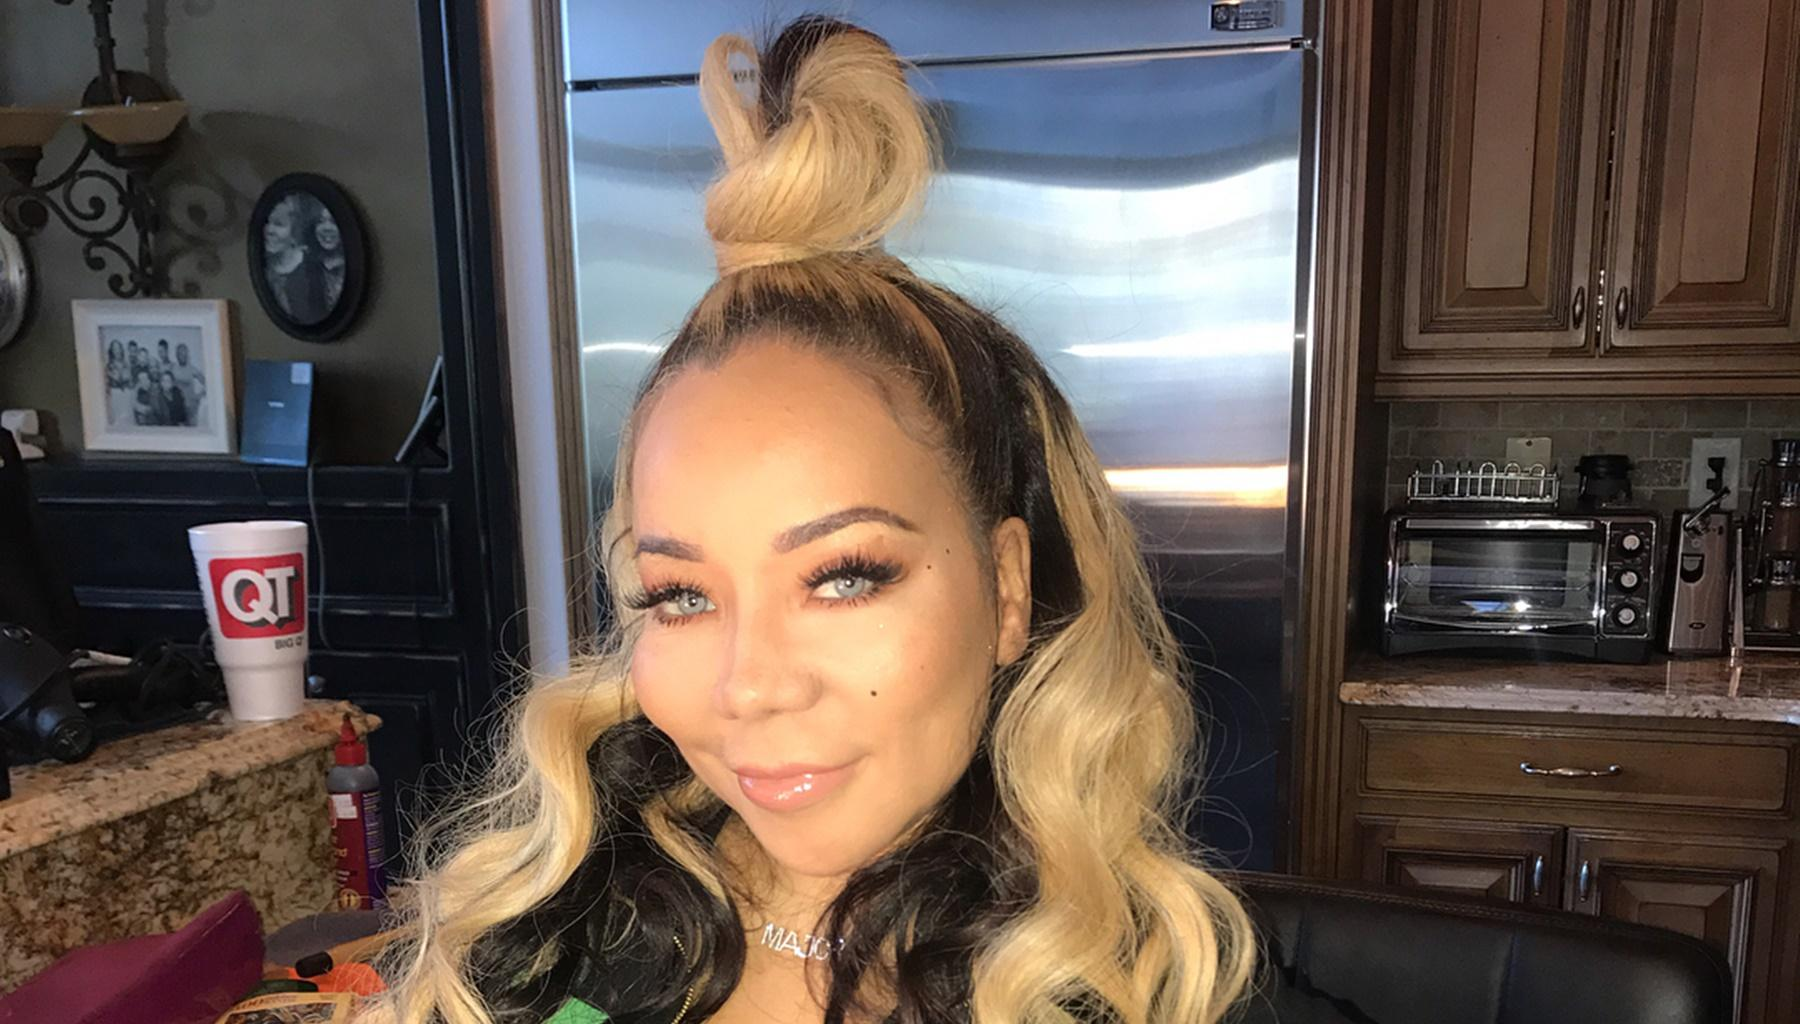 Tiny Harris Offers Her Opinion On Chris Brown's 'Prince Of Pop' Status: 'He's Got It All'